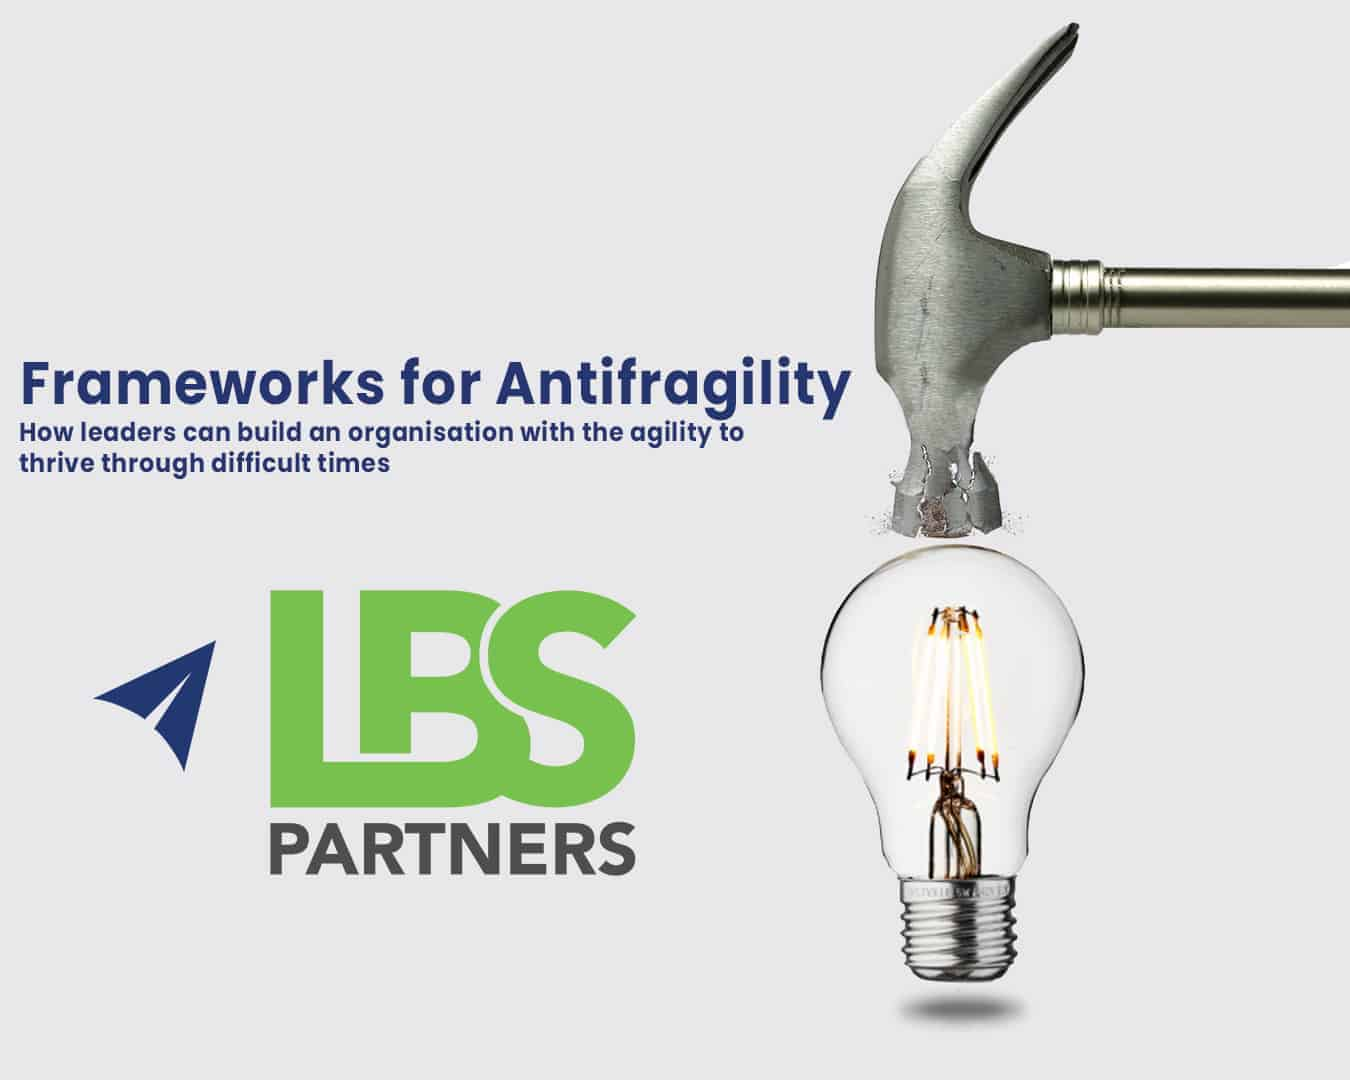 Frameworks for Antifragility